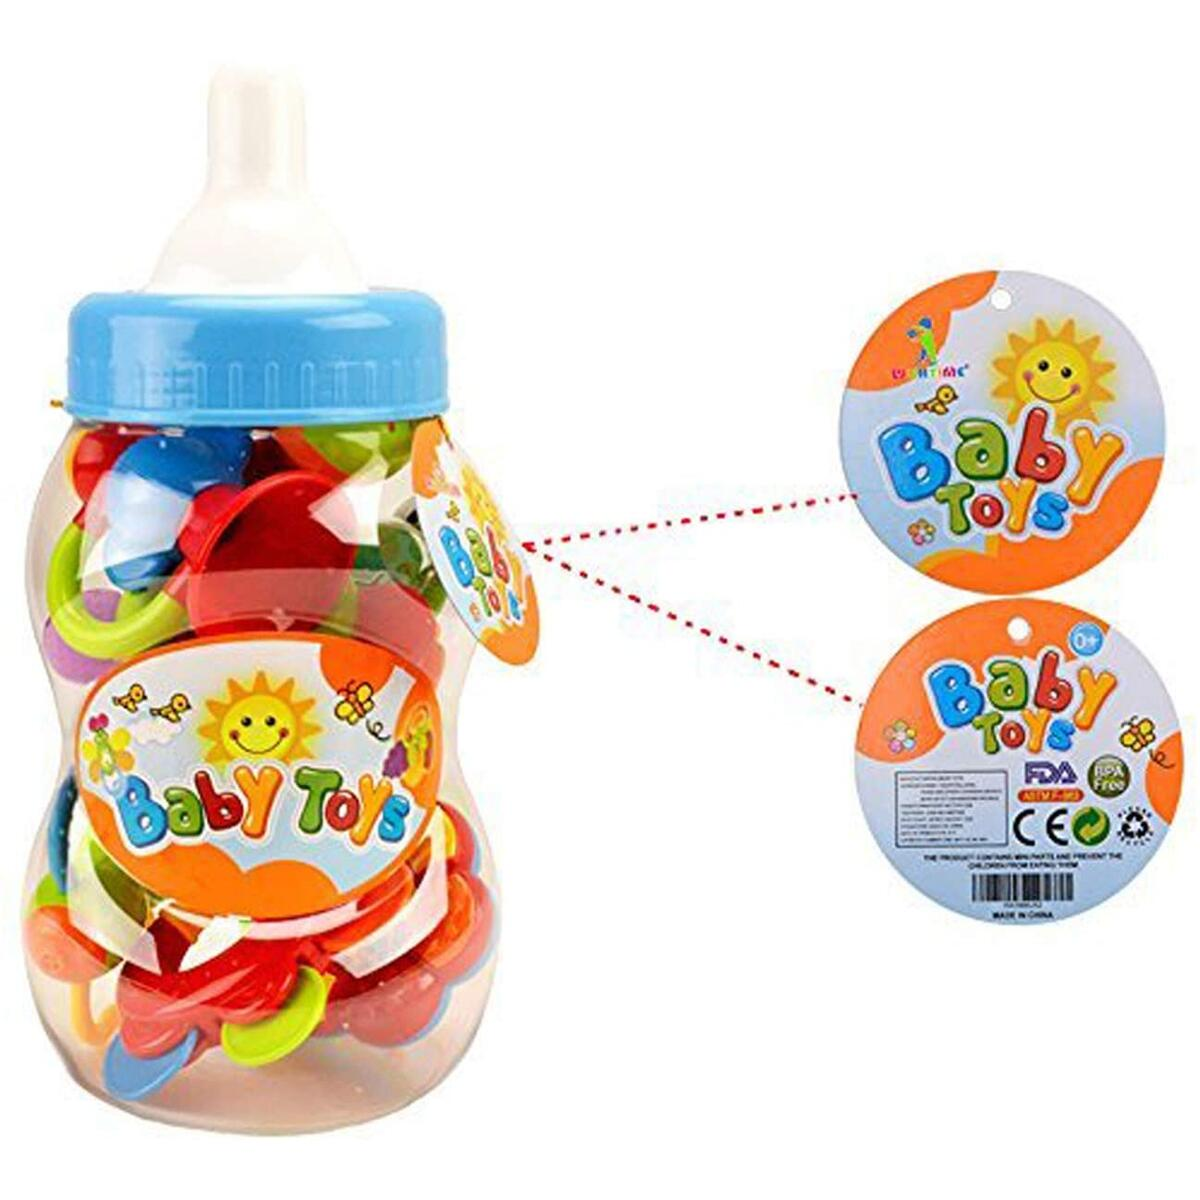 WISHTIME Baby rattles teethers for Newborn Toys,Gifts for Infants 11pcs with Hand Development Rattle Toys and Giant Bottle for 0 3 6 9 12 Month Girl and boy